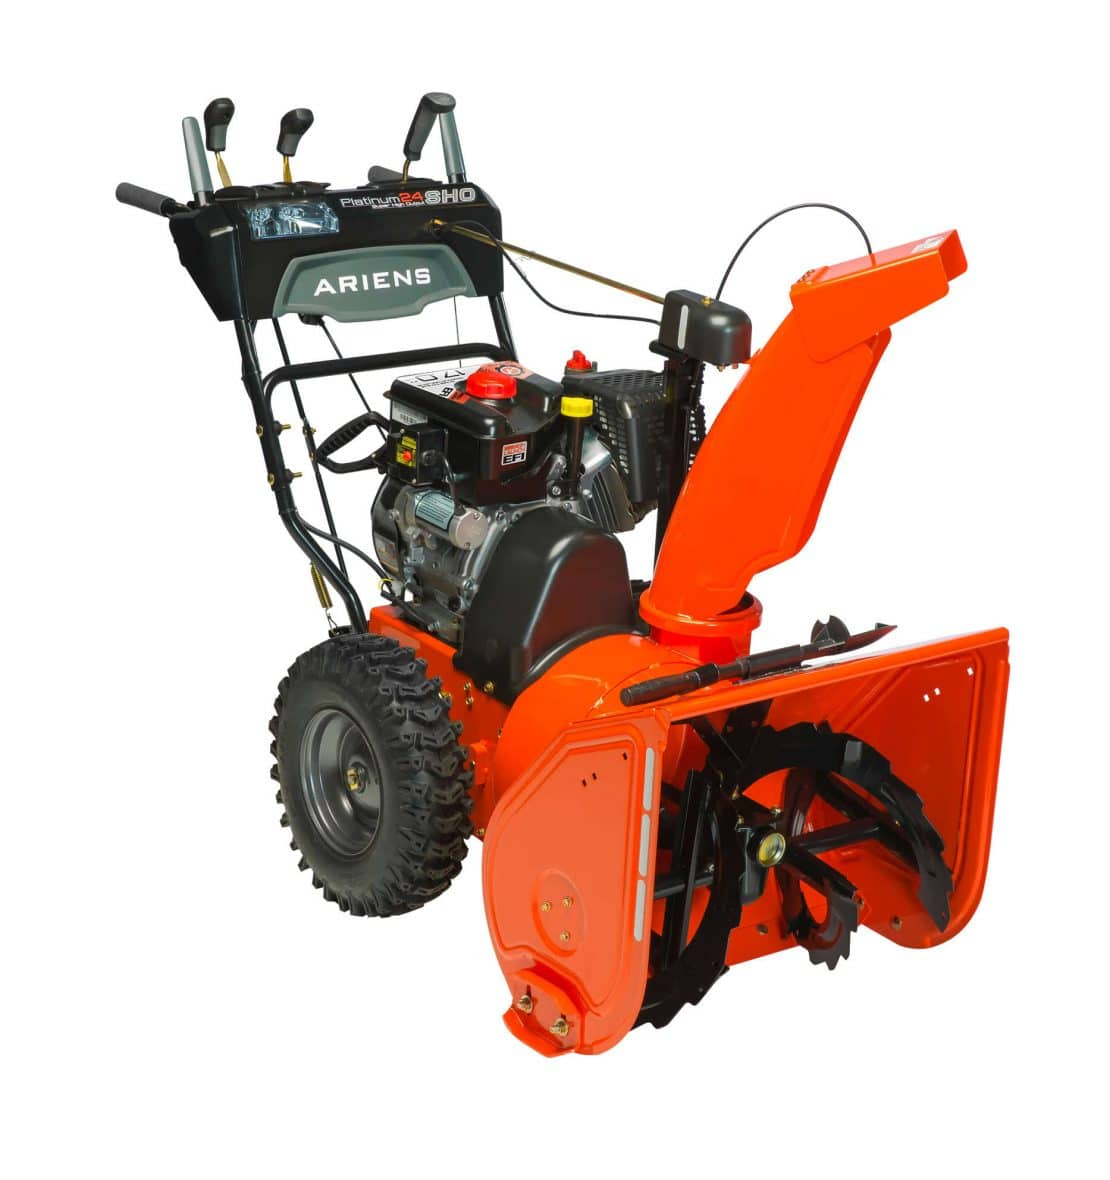 Ariens® Introduces EZ-Launch™ EFI Engine for Sno-Thro® Products